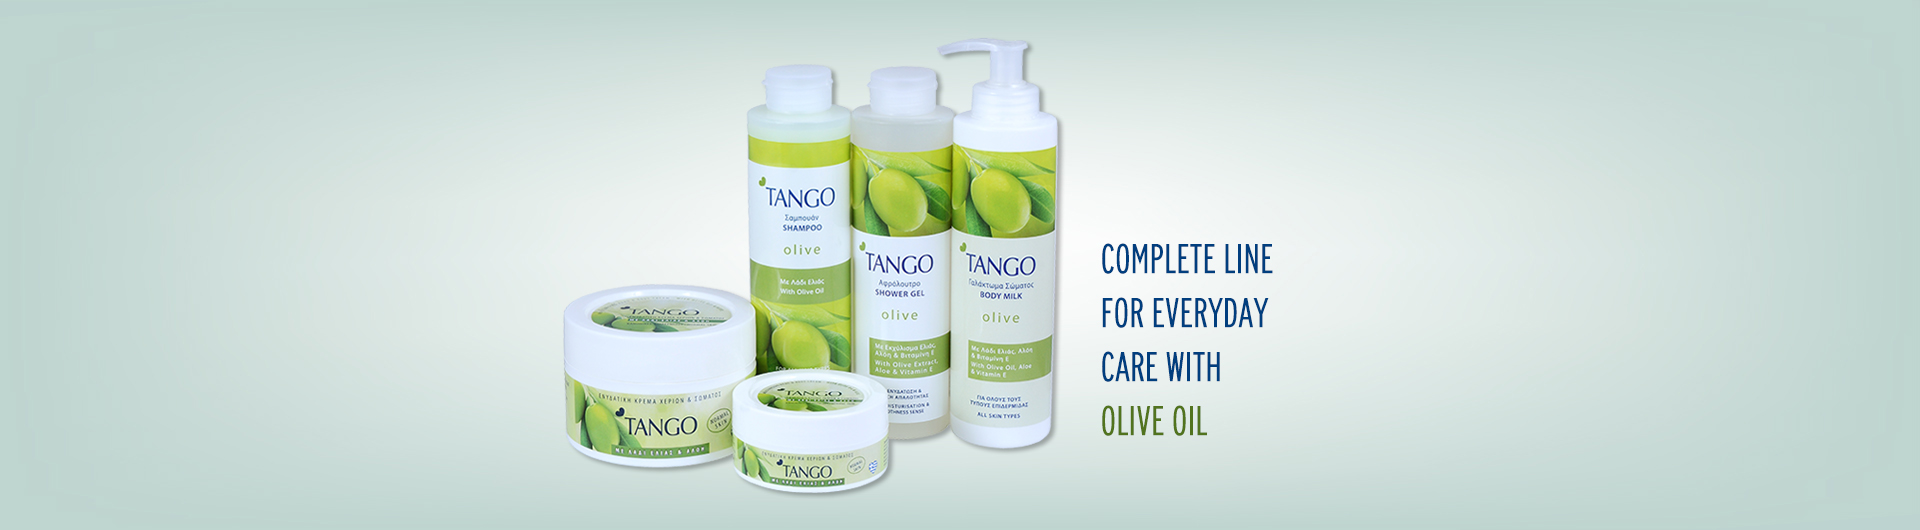 Tango - complete olive oil line